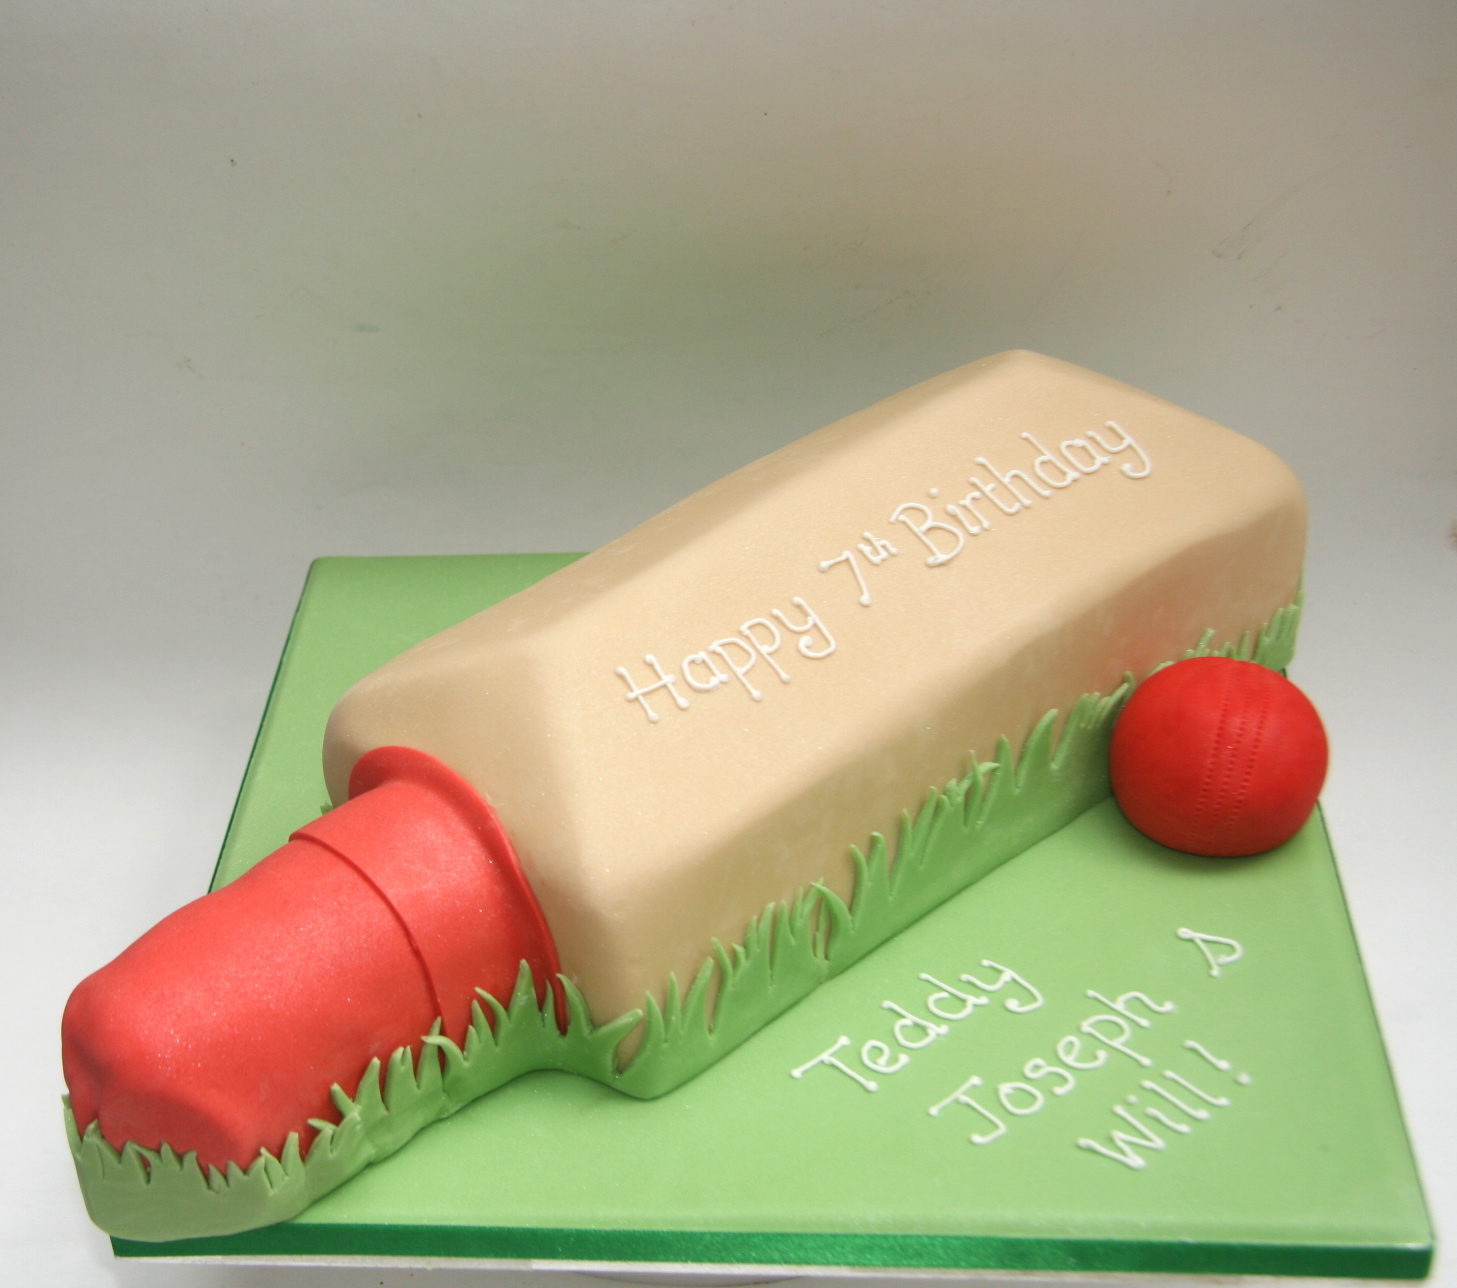 Cricket Bat Cake Images : Cricket Bat Cake Etoile